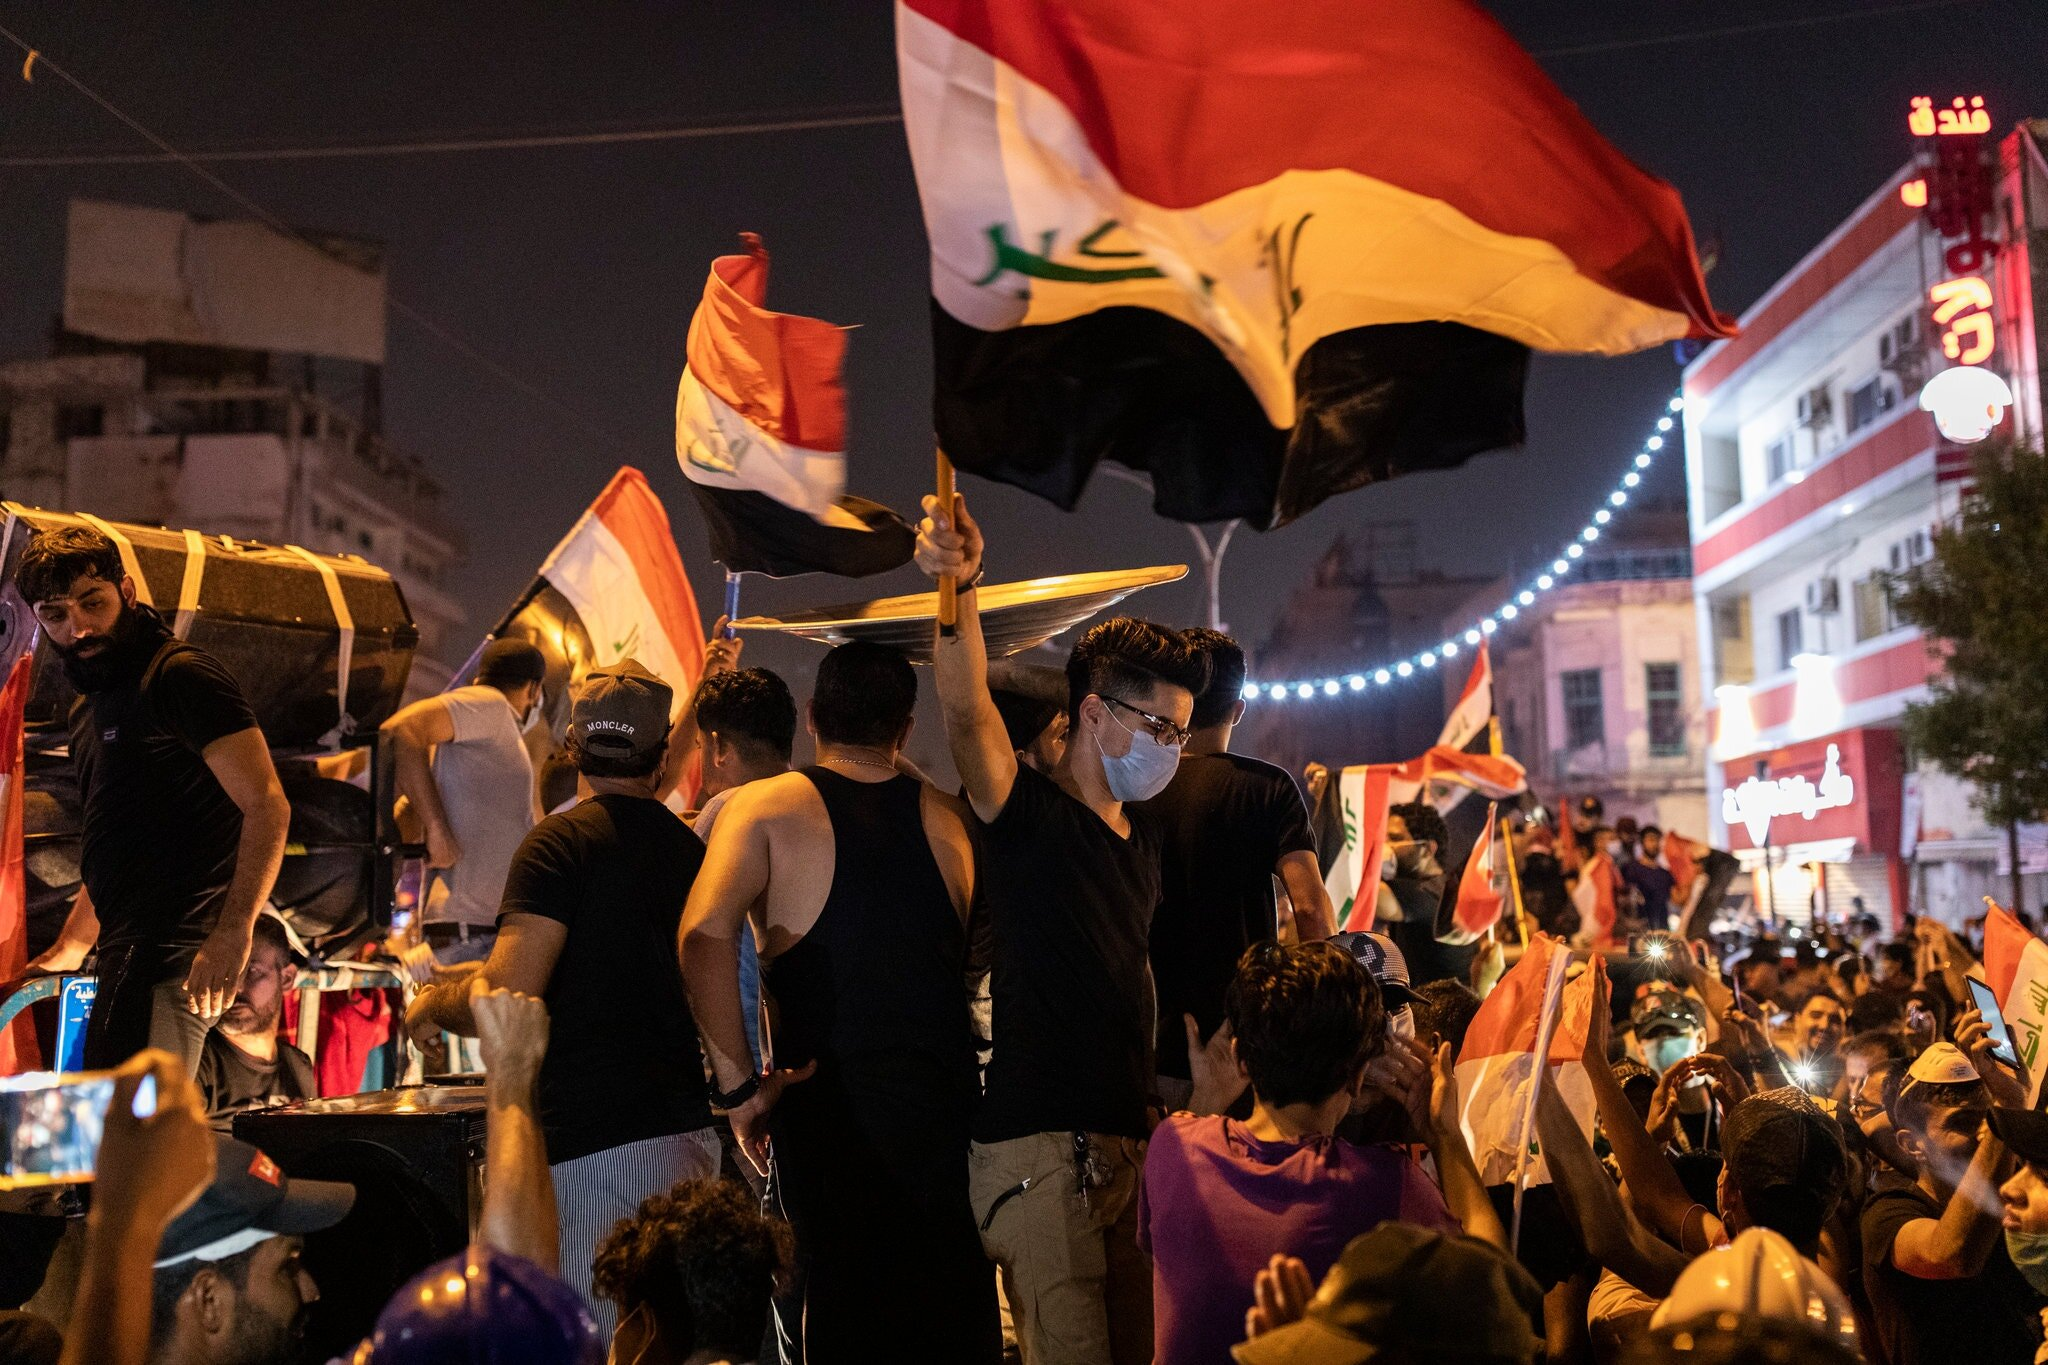 Protesters filled the streets around Tahrir Square in Baghdad last Monday. Credit Ivor Prickett for The New York Times